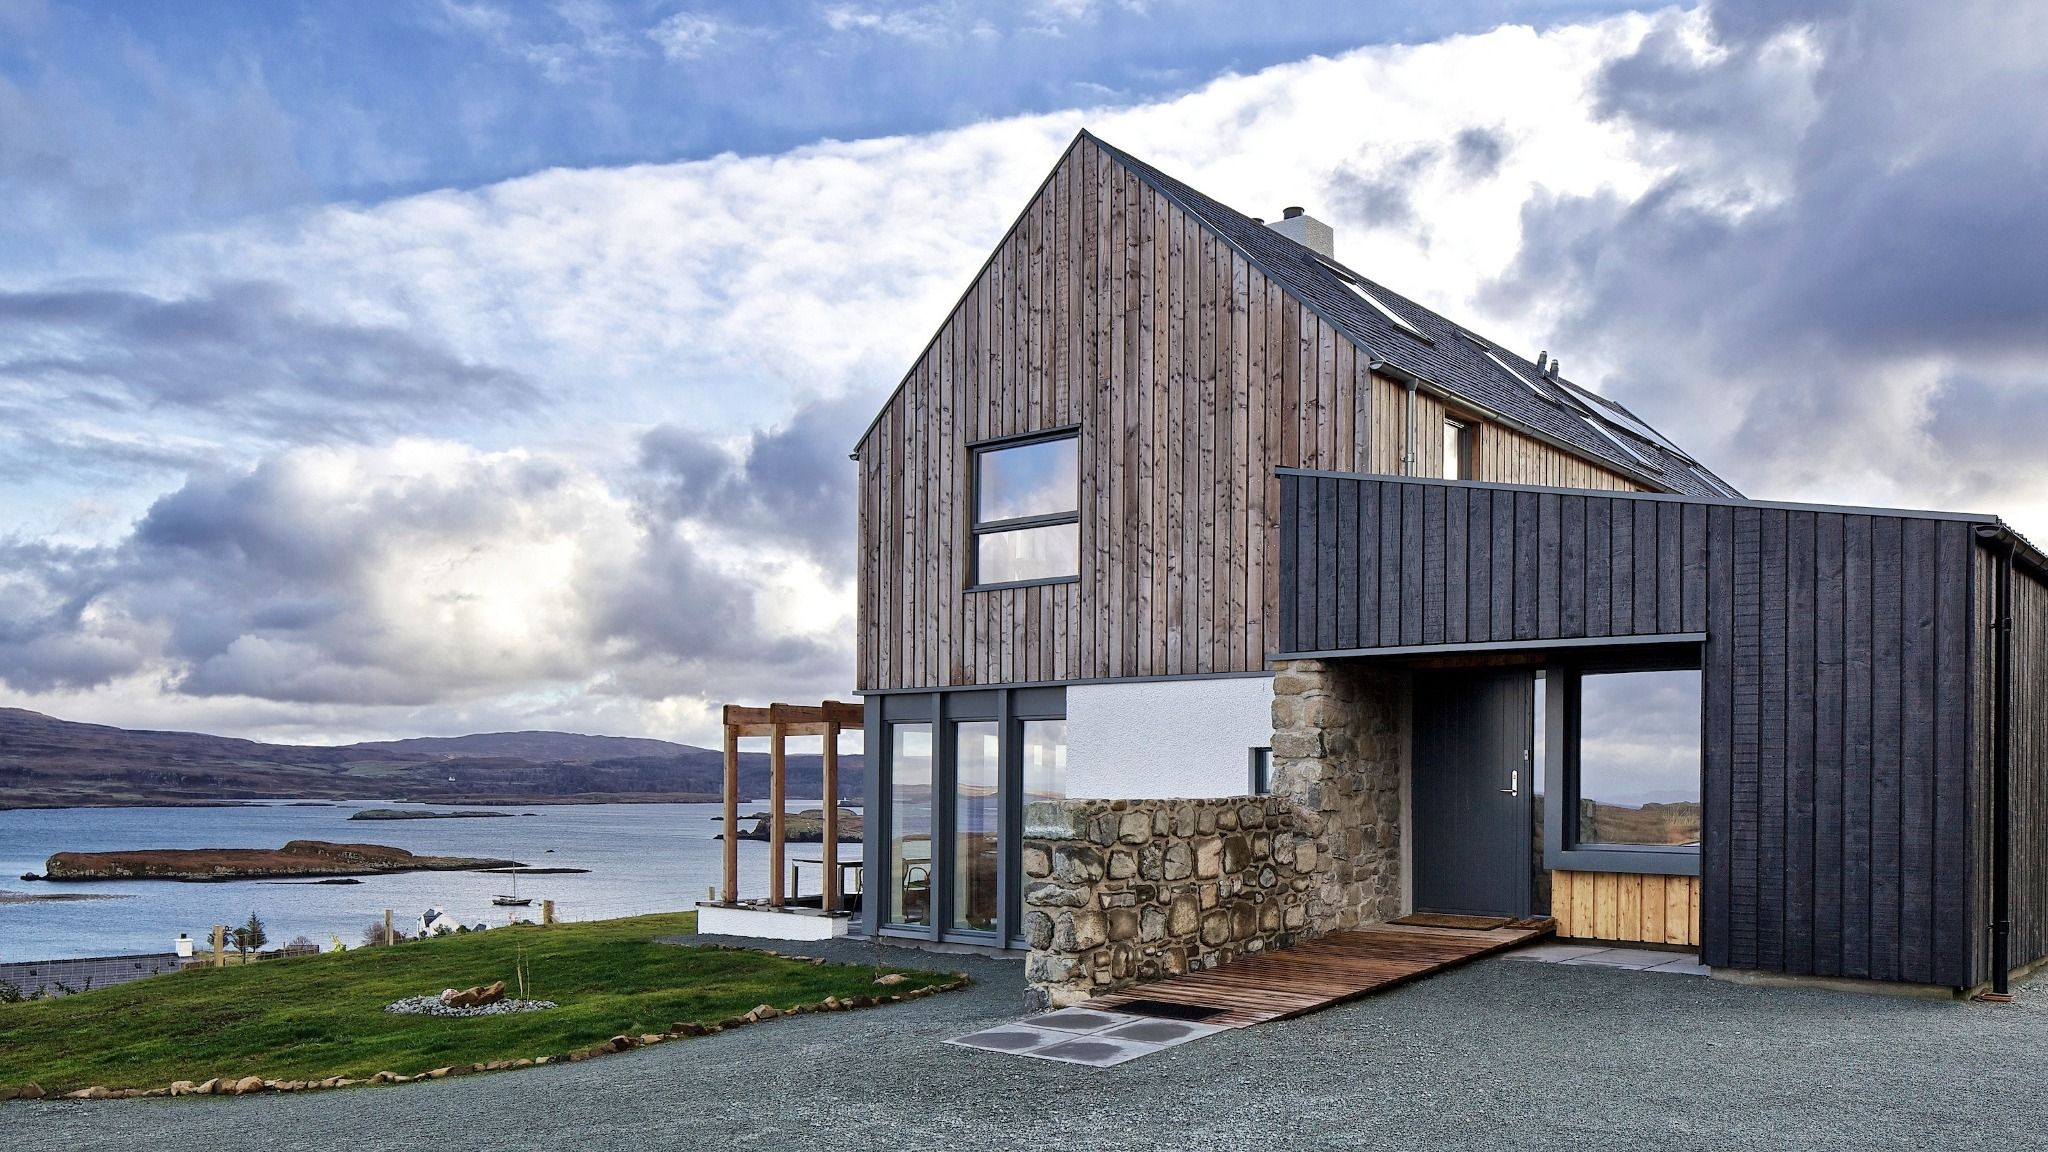 House Designs Scotland Colbost Rural Design Architects Isle Of Skye And The